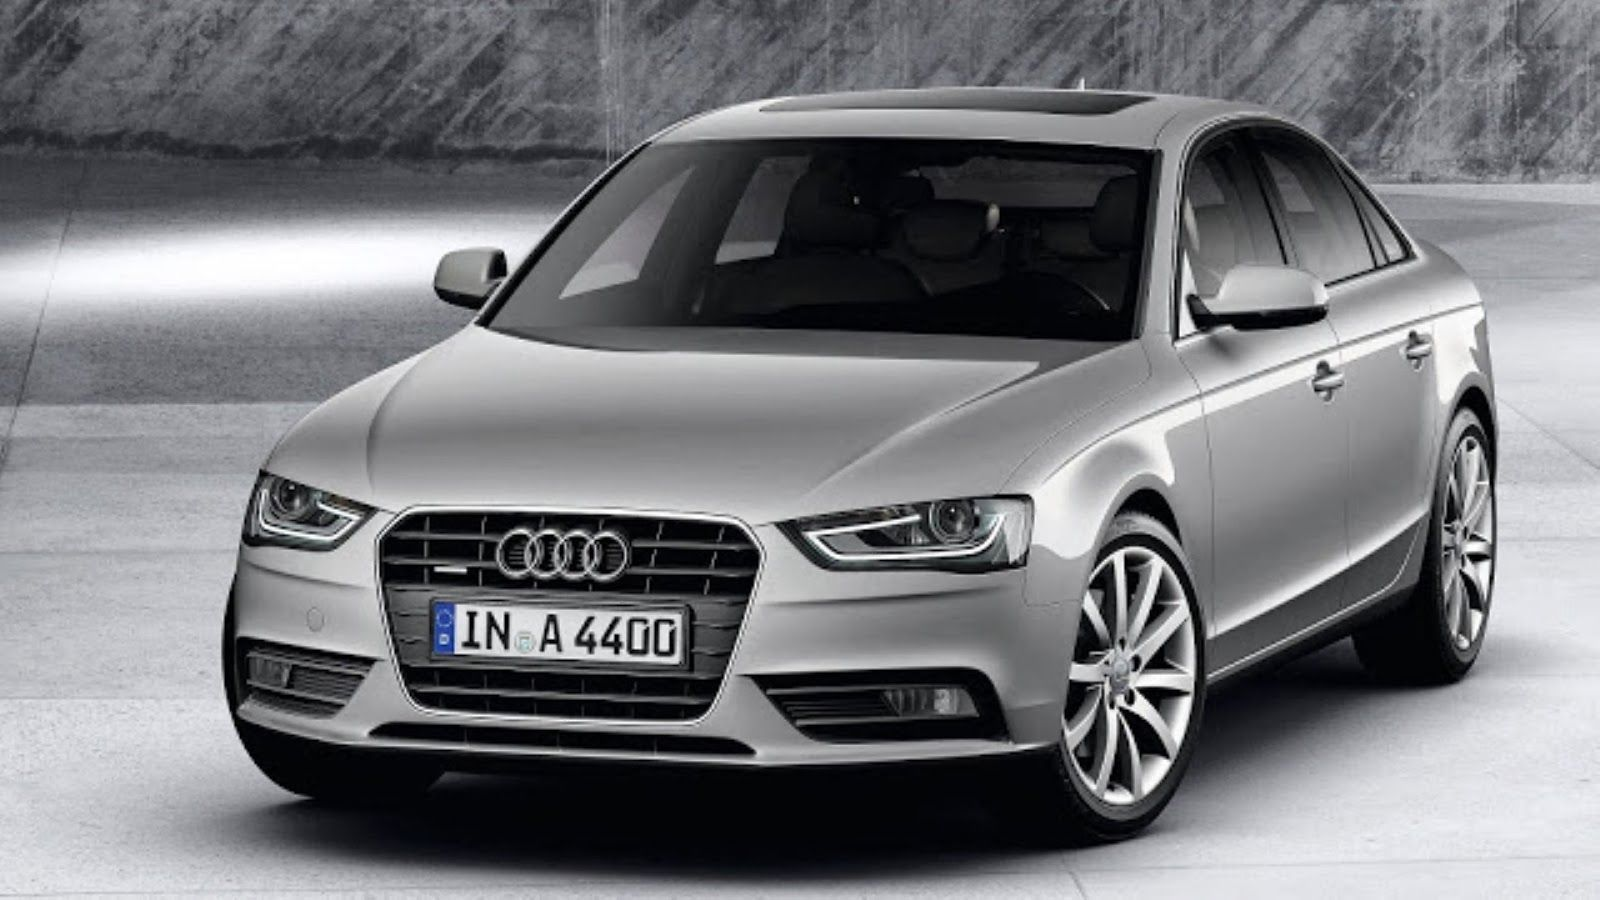 Audi a4 specification photos